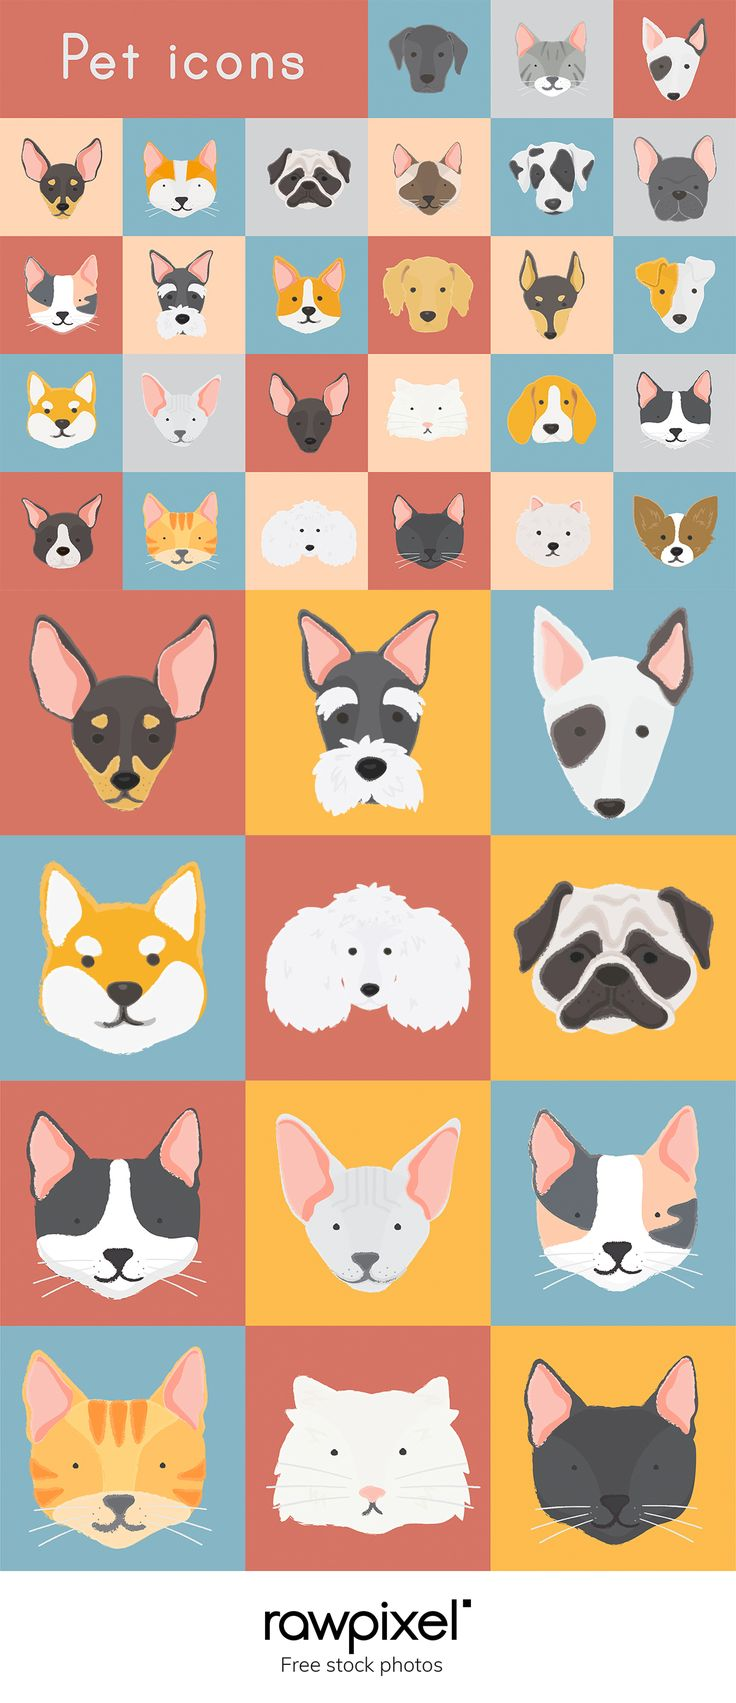 Download free royaltyfree images of cute pet icons at